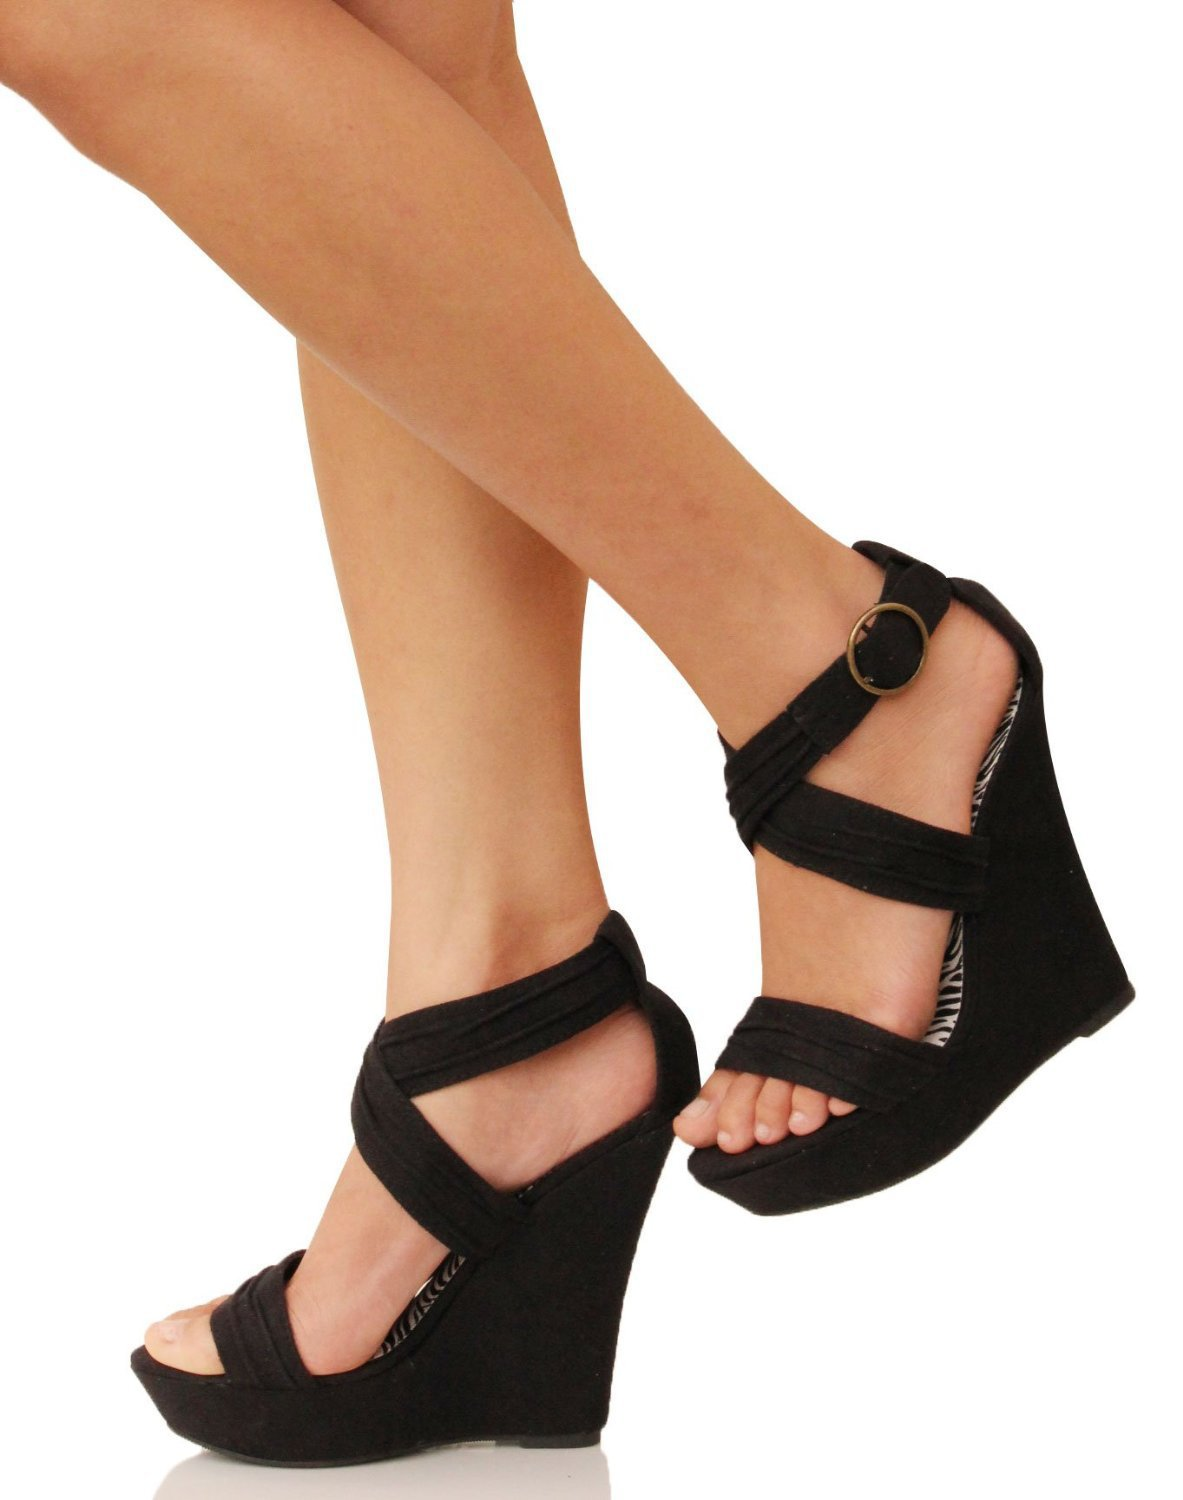 Amazon.com: Strappy Platform Wedges Heel Sandal Garzon Fuchsia Black: Shoes